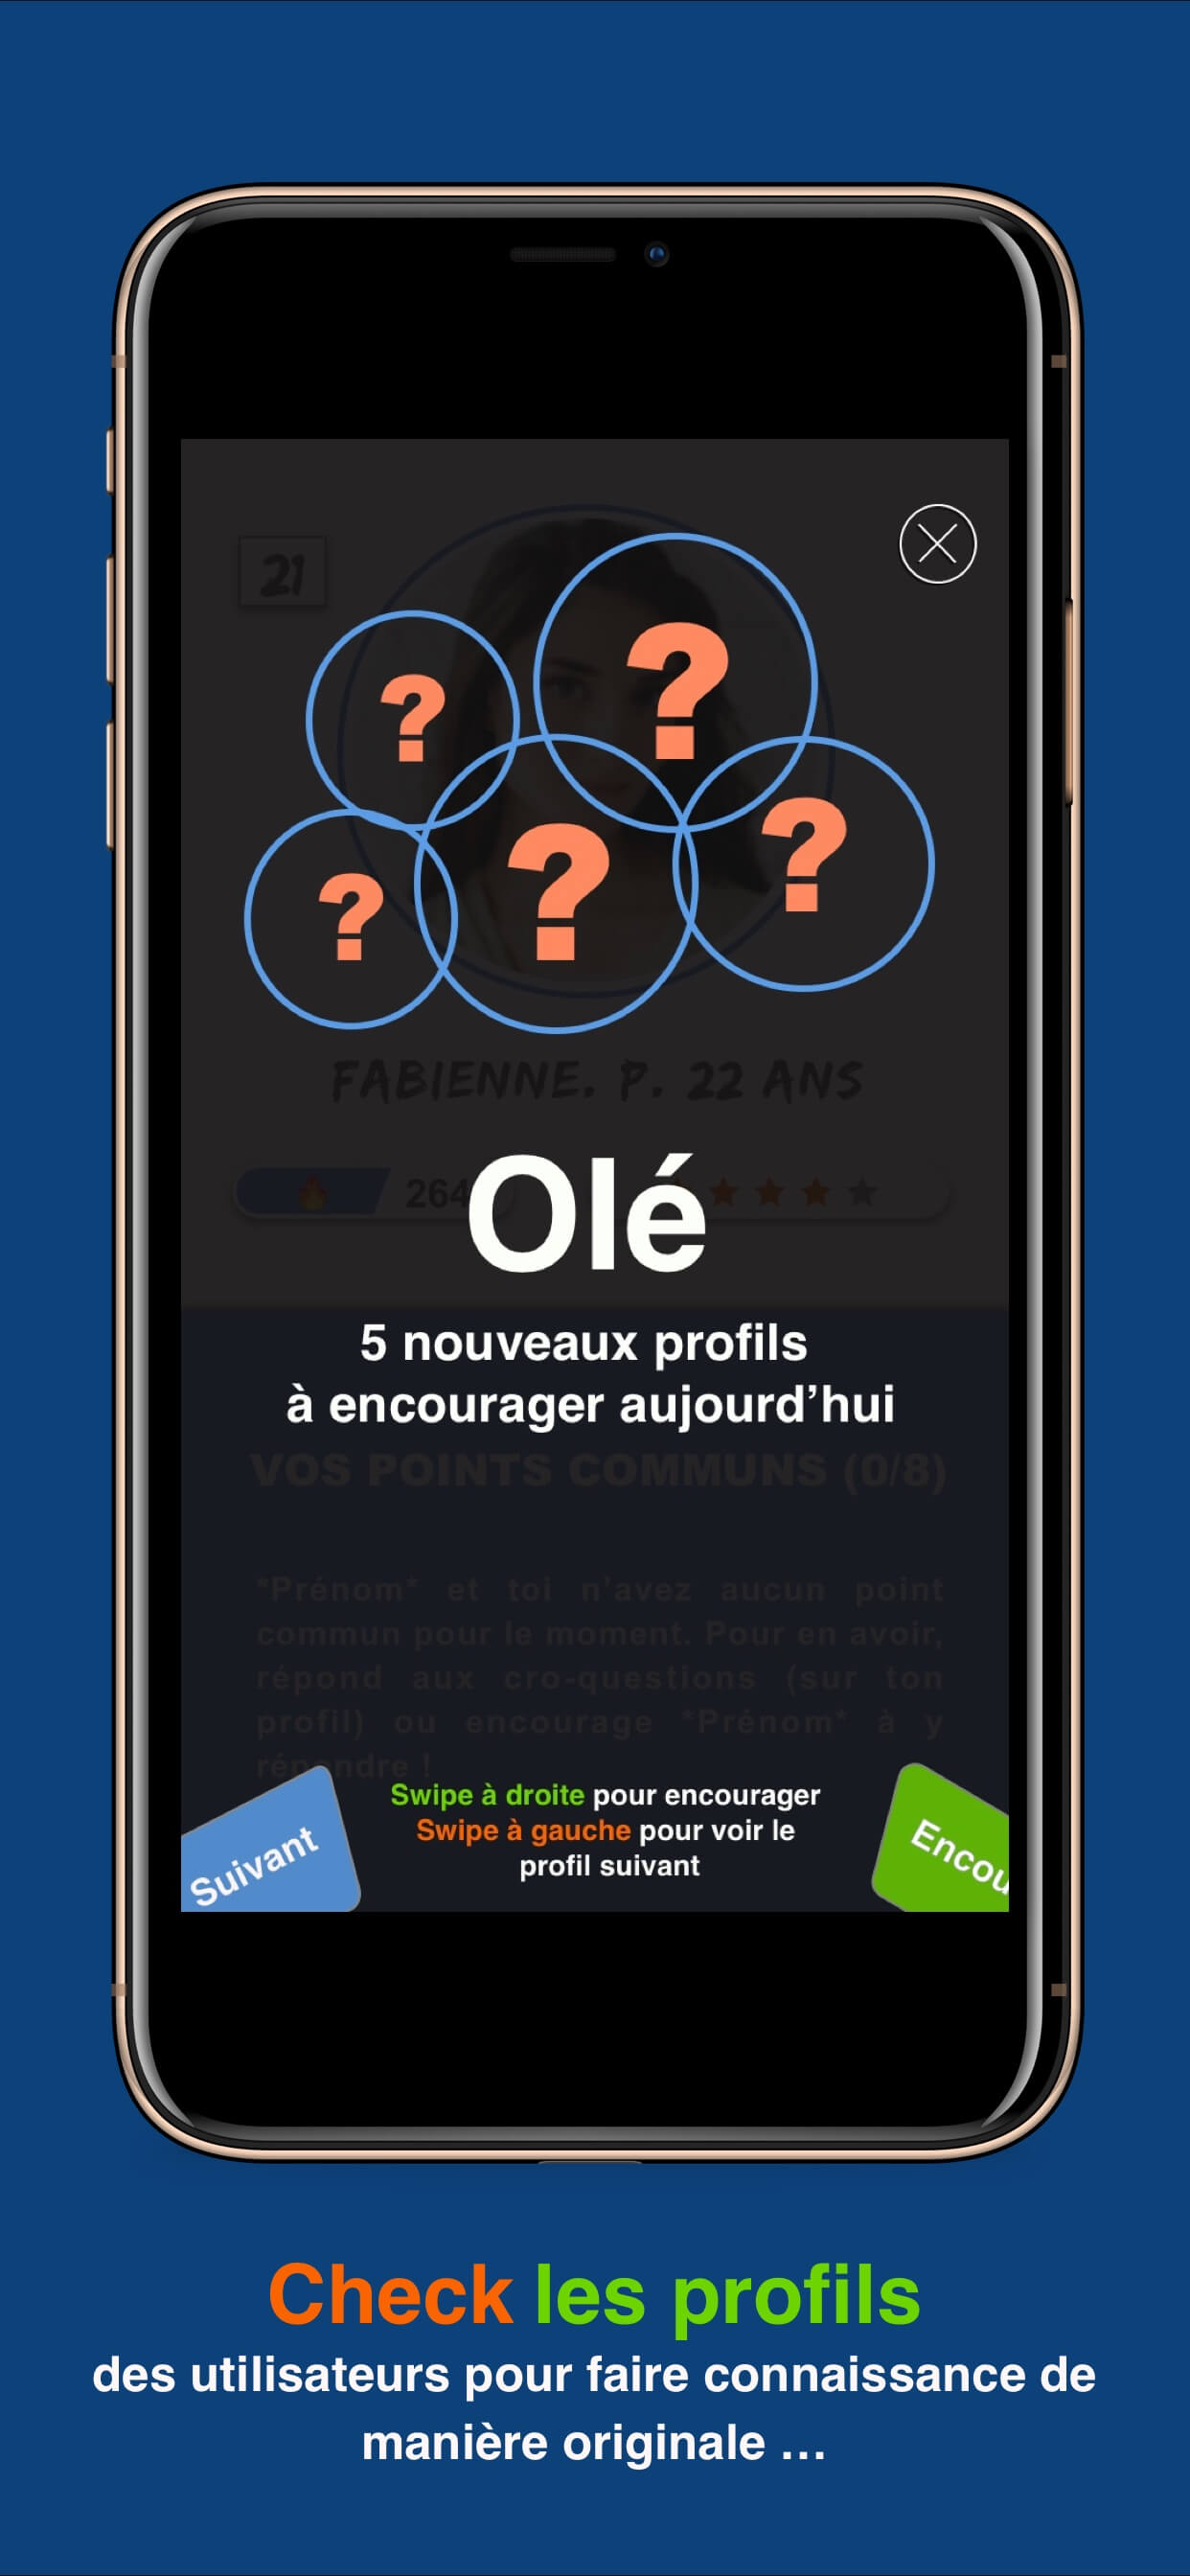 elyot-application-ios-iphone-freelance-bordeaux-jeremy-peltier-7